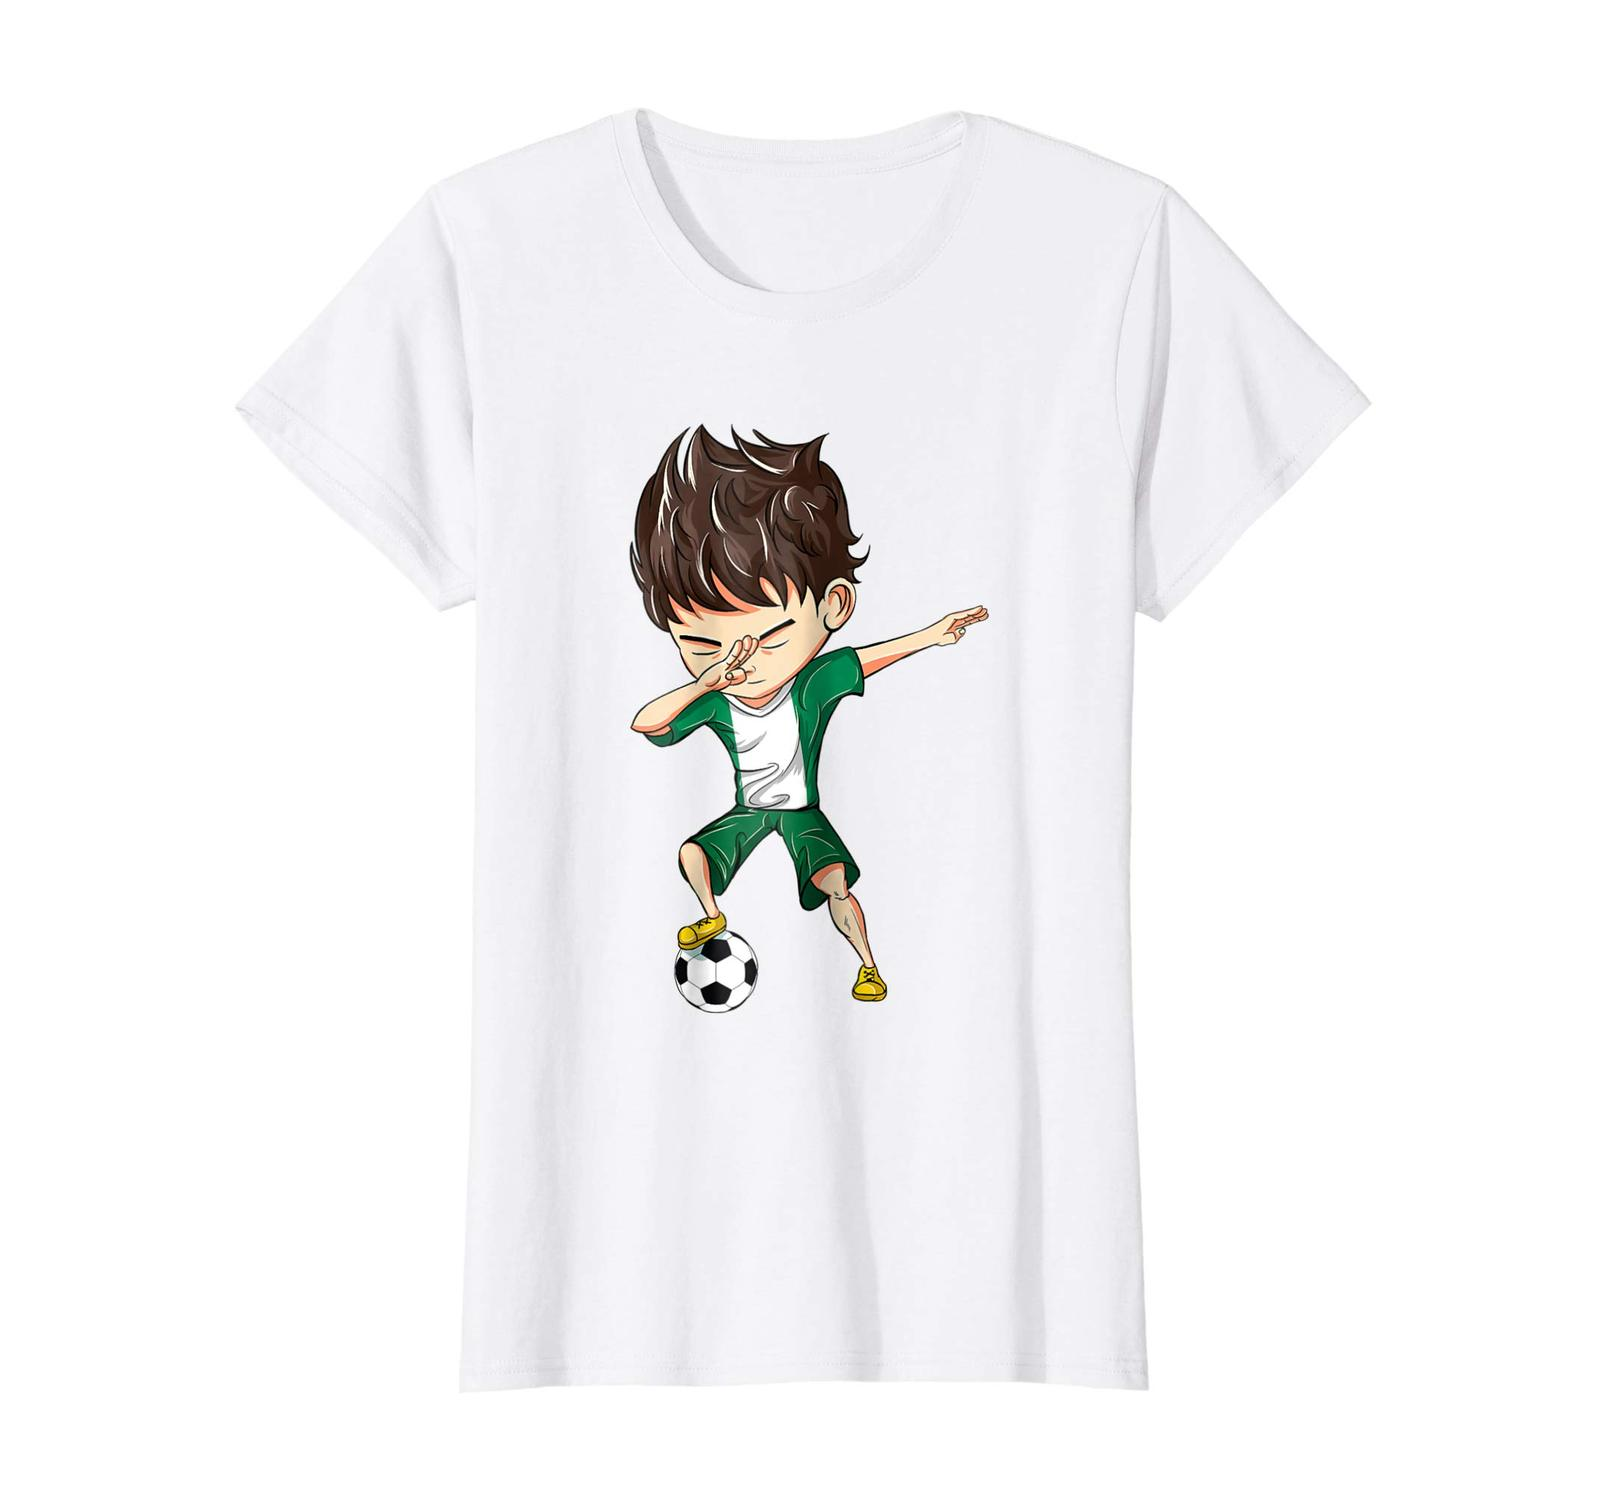 bb6a8334e Brother Shirts - Dabbing Soccer Boy Nigeria and 50 similar items.  A1zdawwgrcl. cla 7c2140 2000 7c81uqmgjrq4l.png 7c0 0 2140 2000 0.0 0.0  2140.0 2000.0